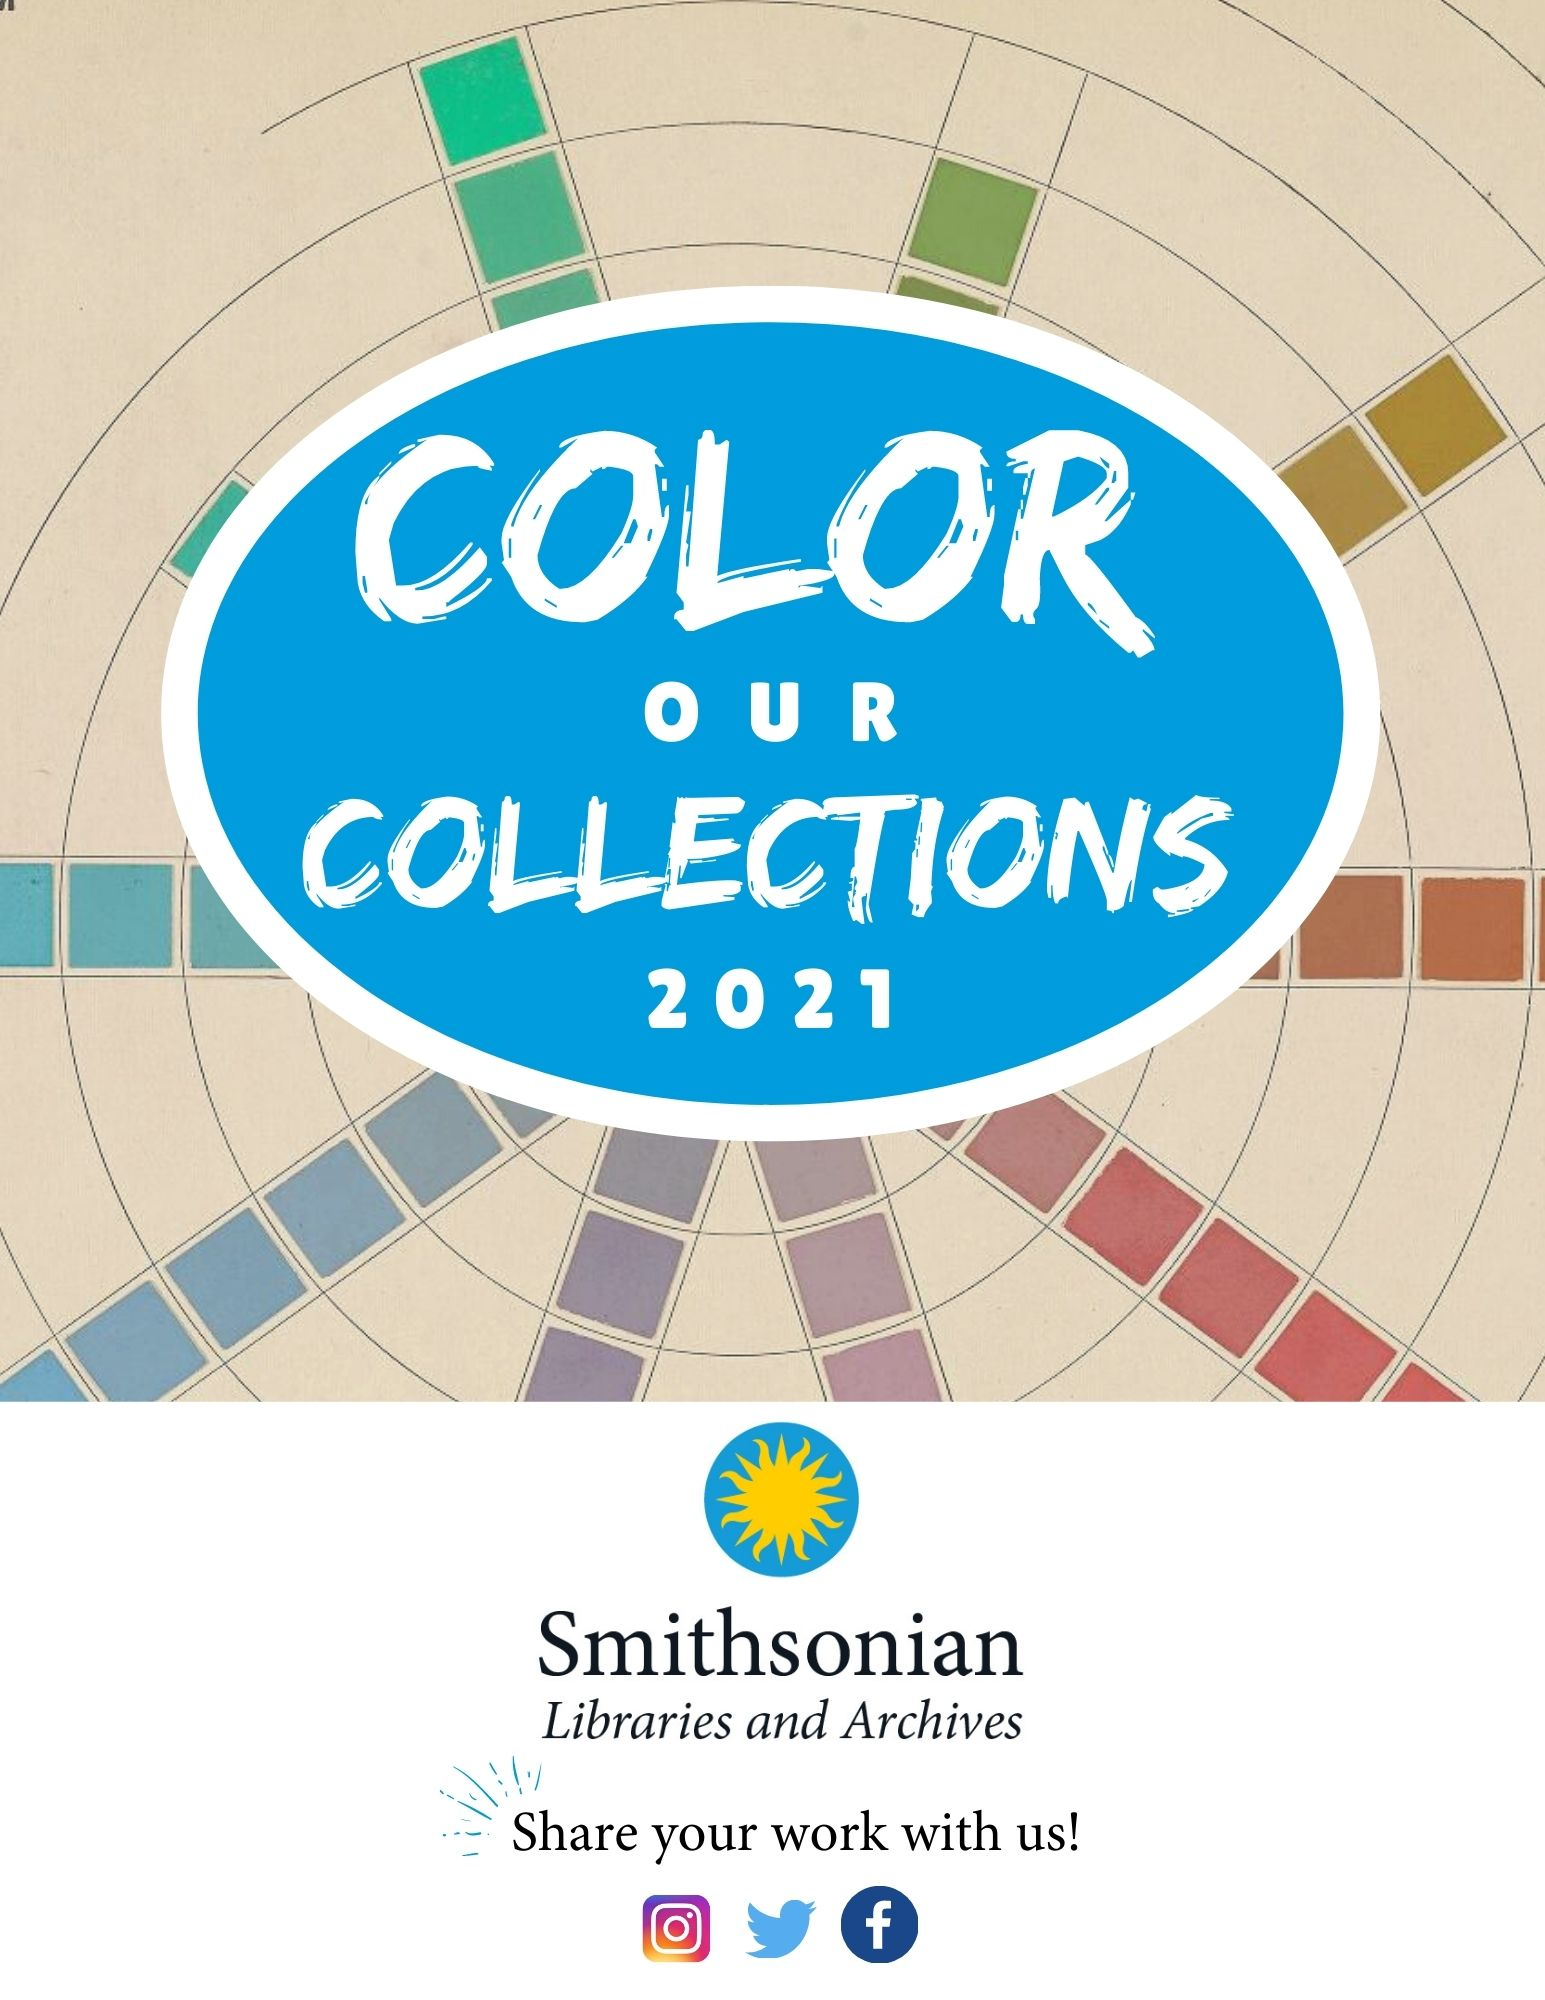 ColorOurCollections 2021 coloring book graphic